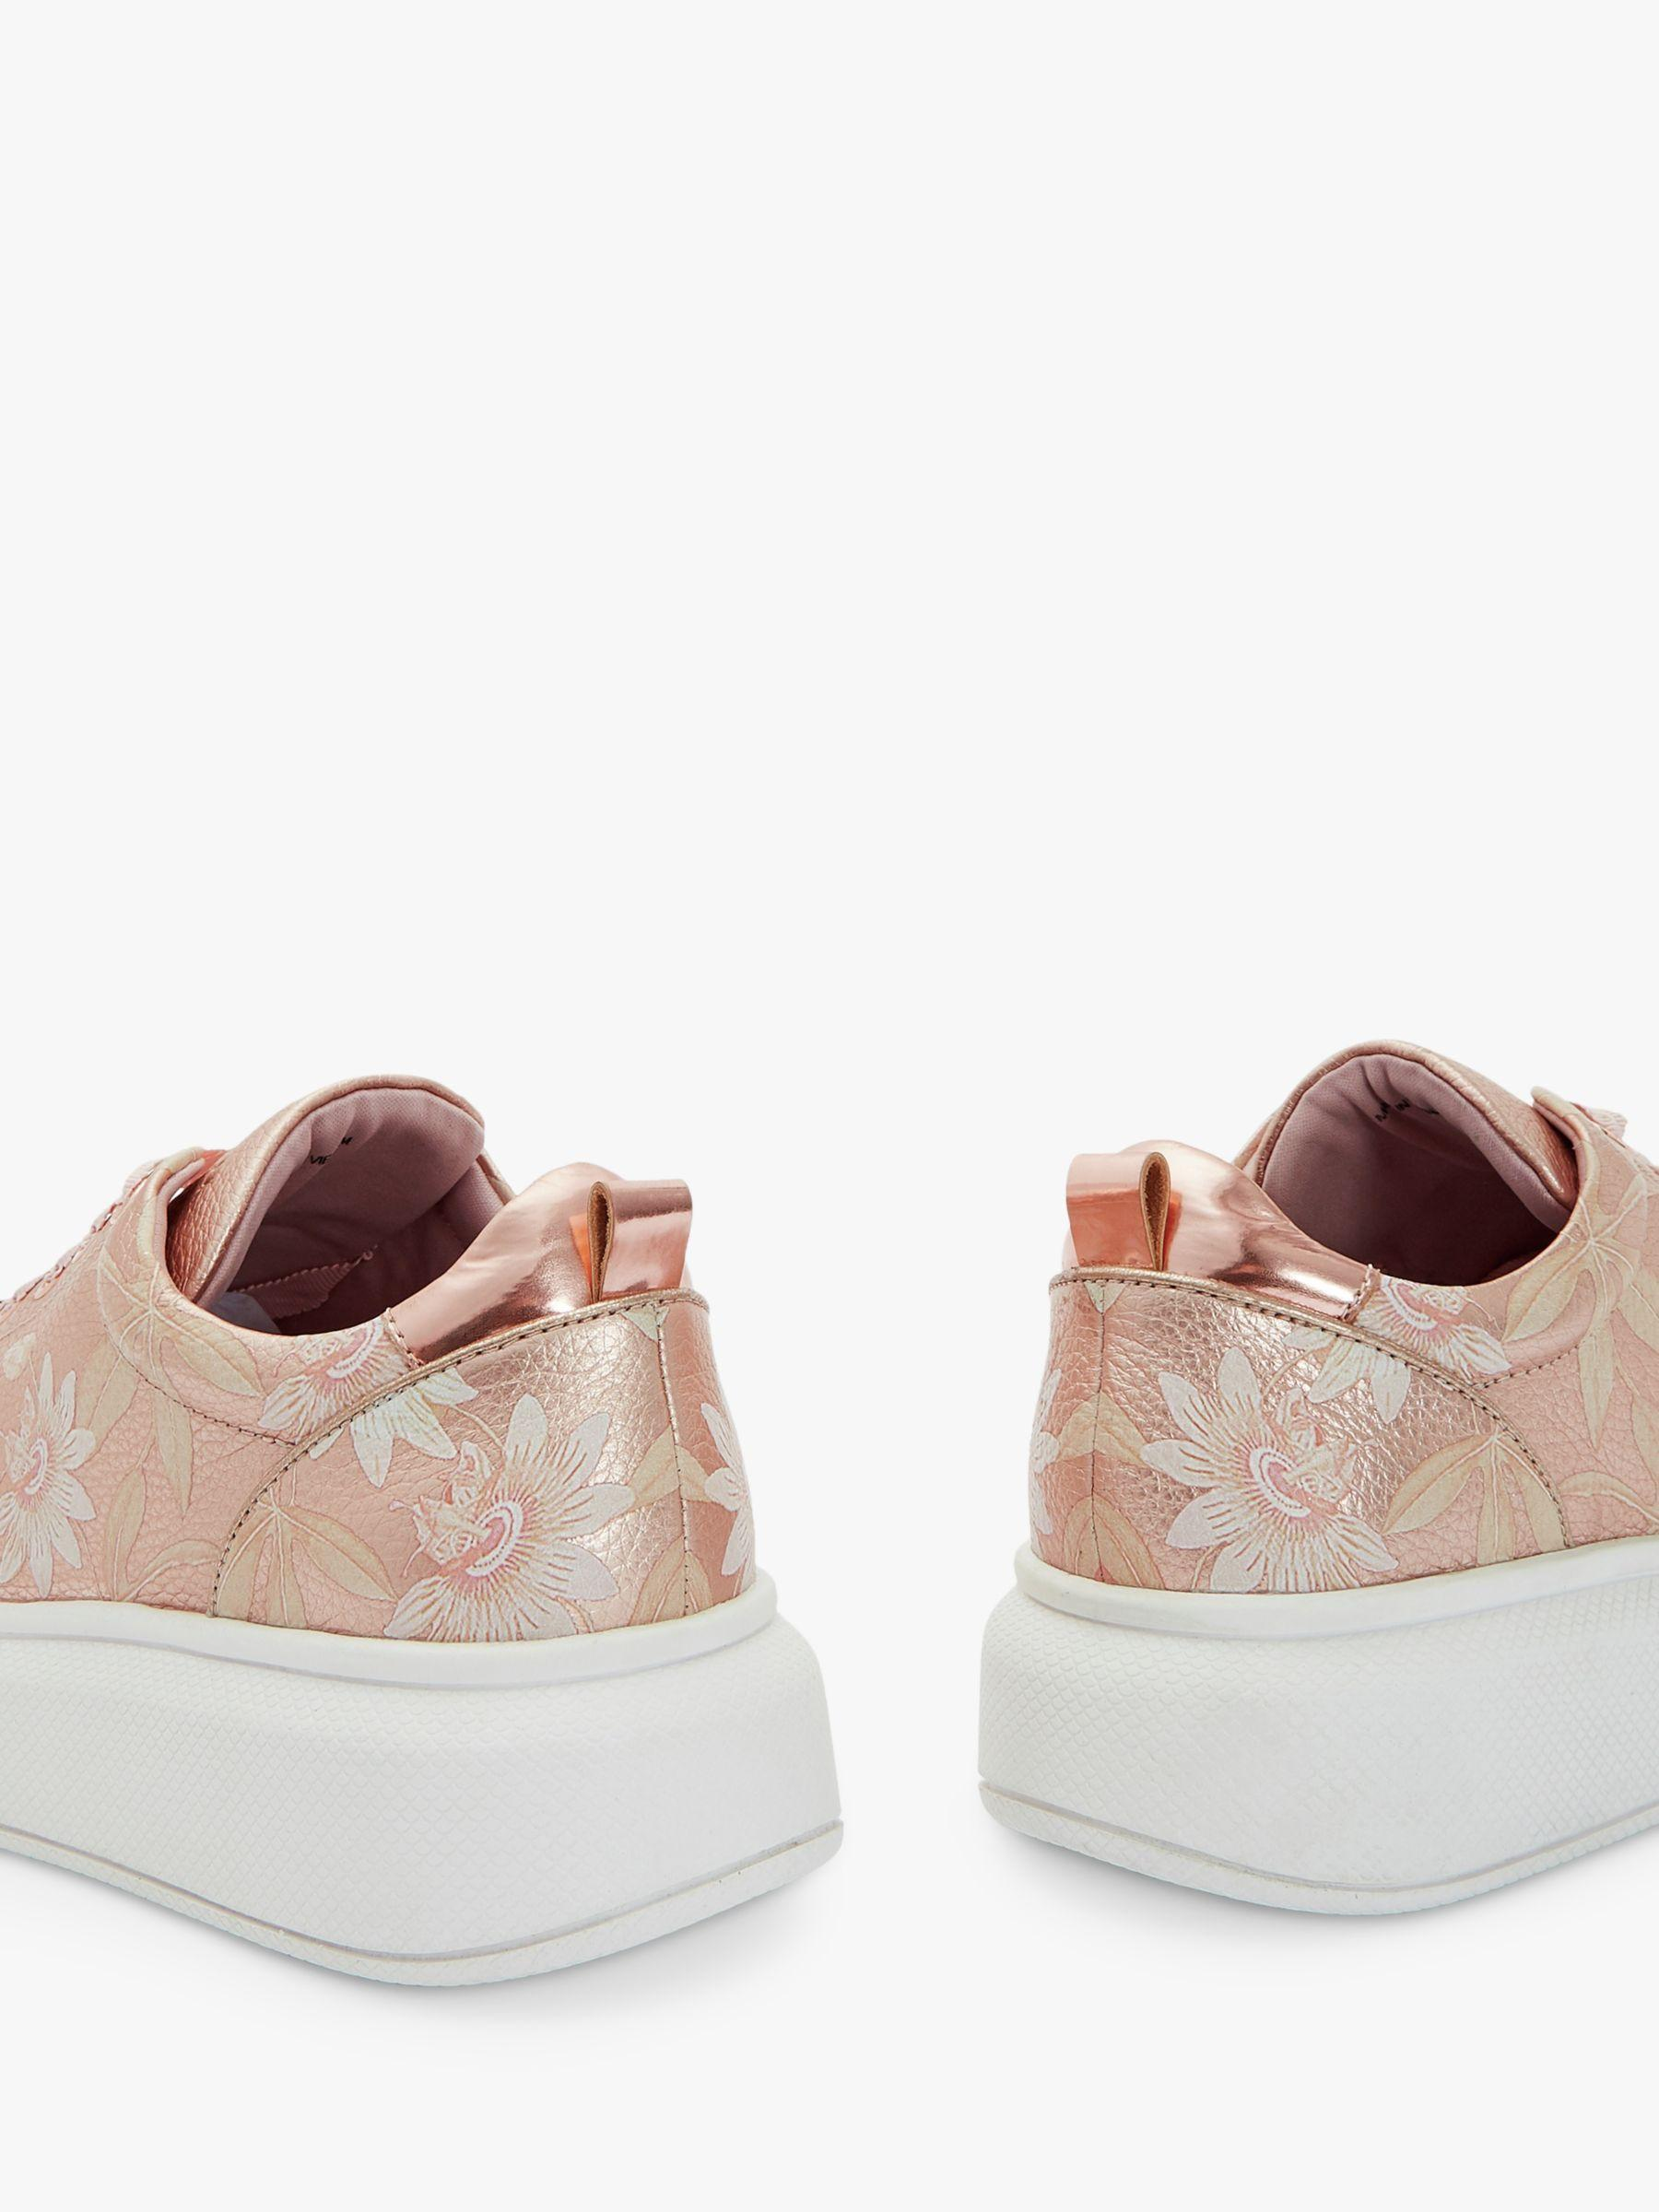 20885fe2f Ted Baker - Pink Alibe 4 Floral Leather Trainers - Lyst. View fullscreen